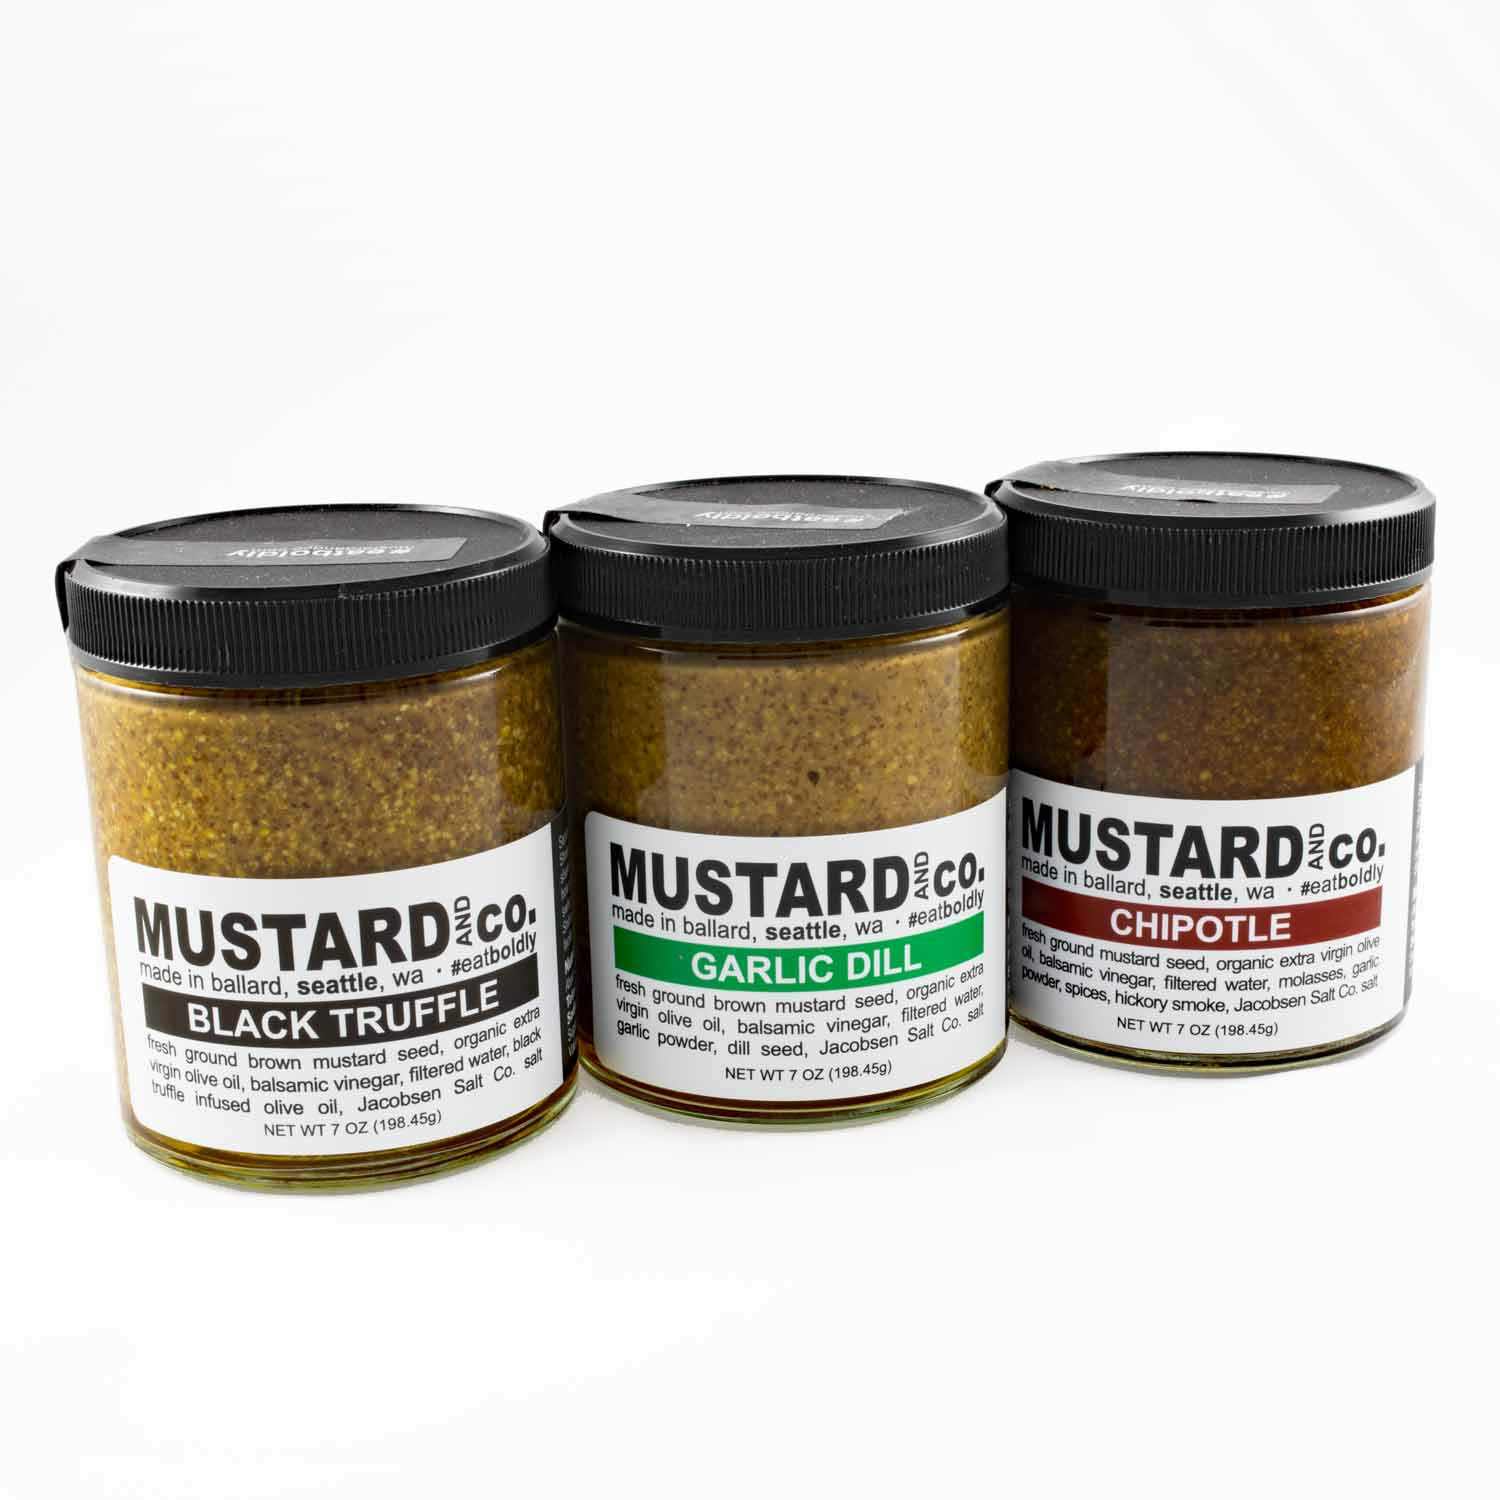 Mustard-and-Co.-3in1.jpg